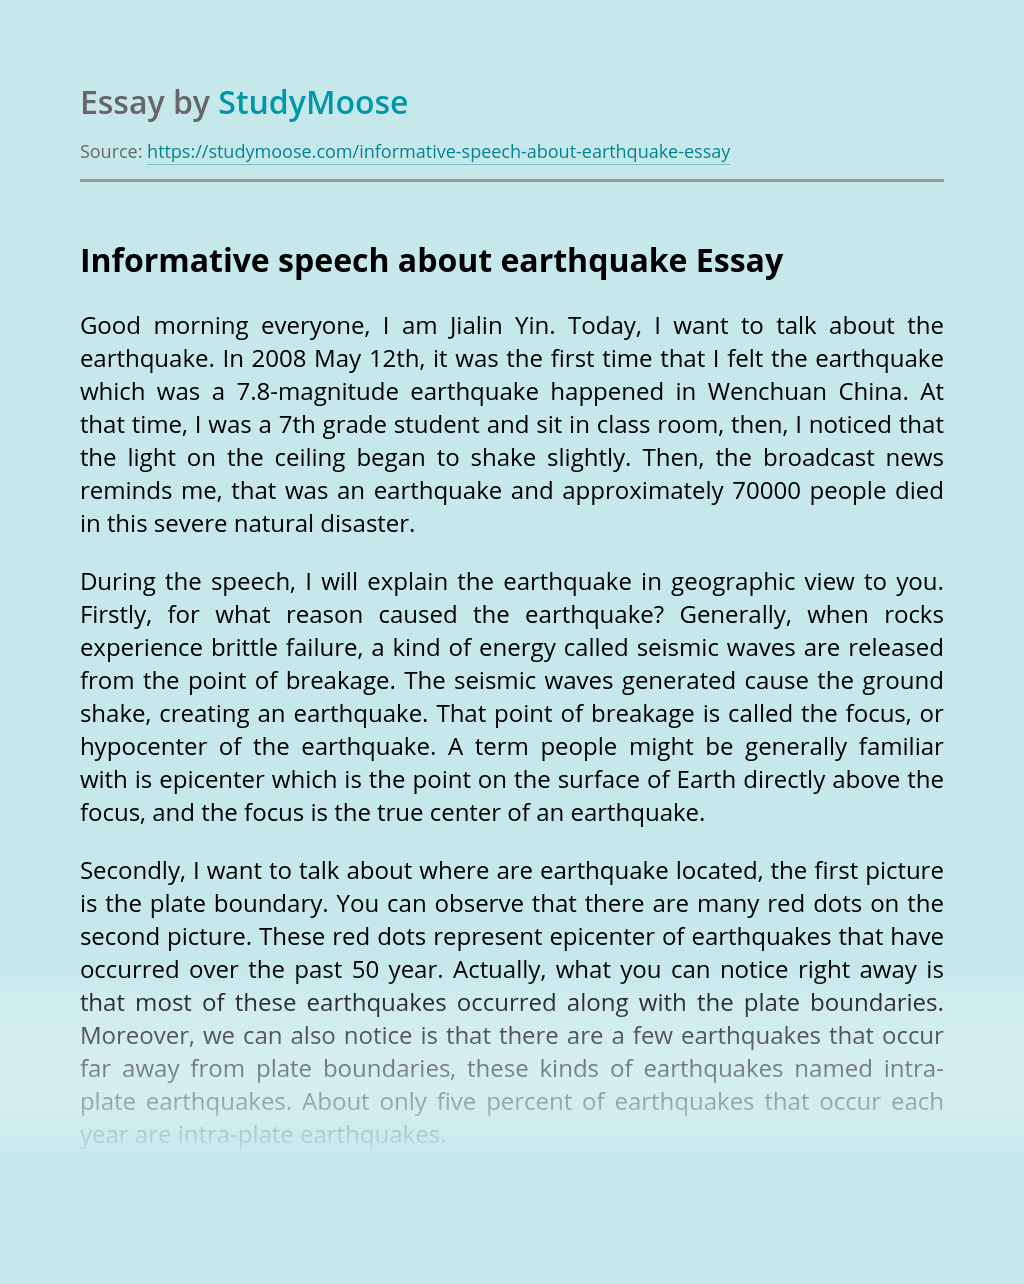 Informative speech about earthquake